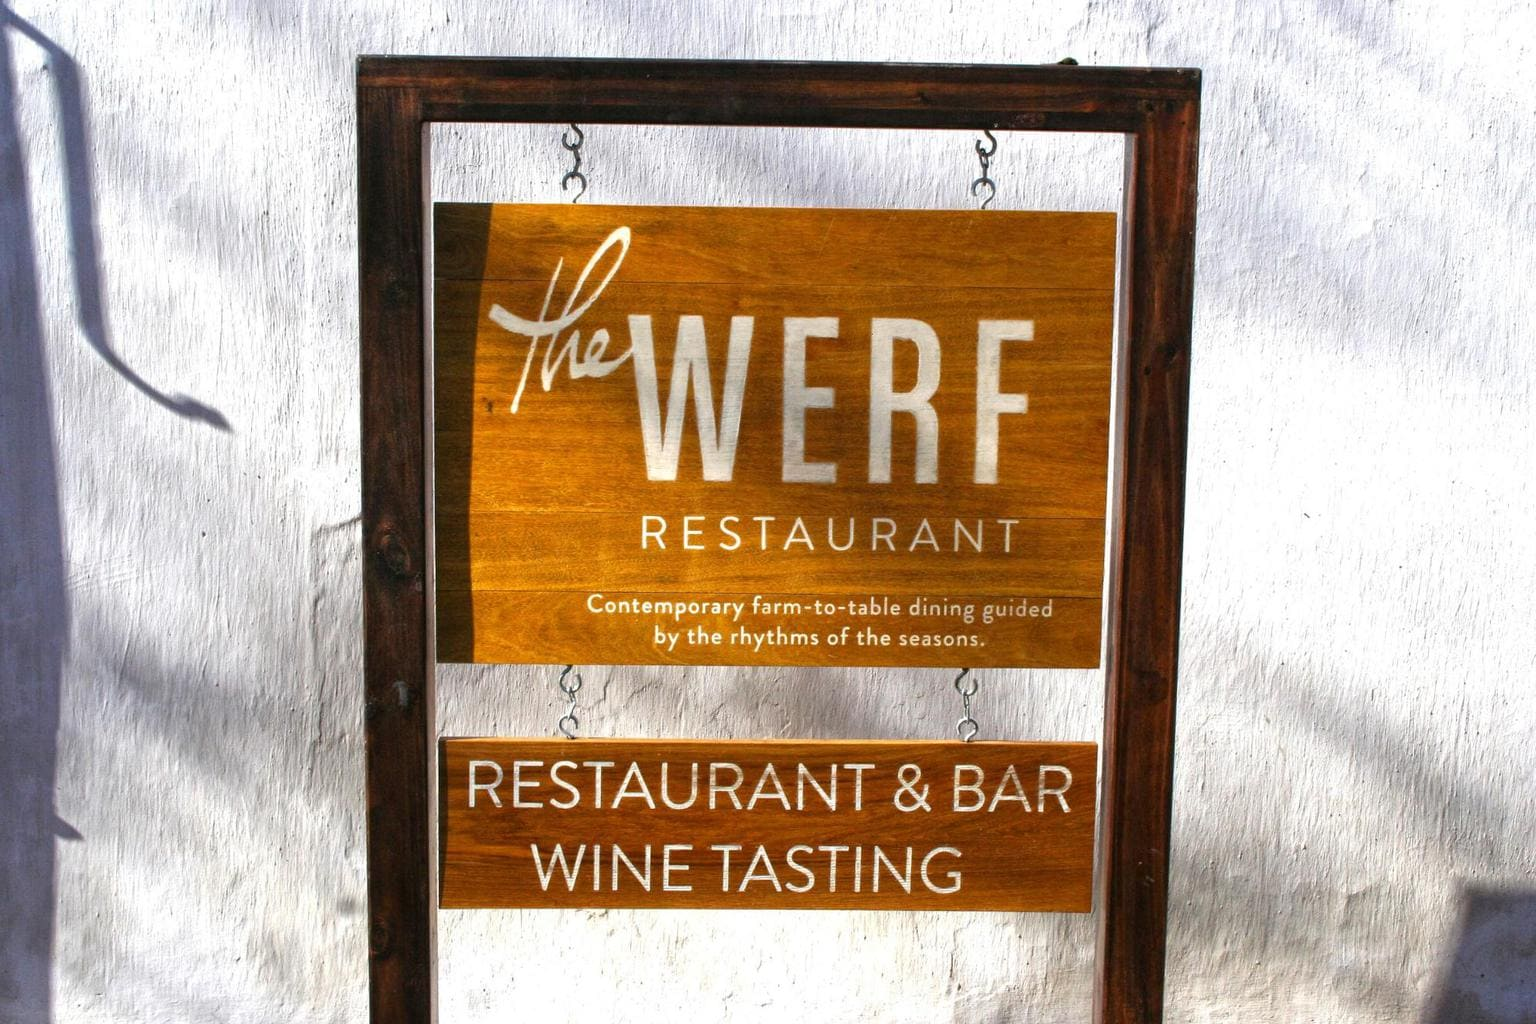 The Werf restaurant sign at Boschendal